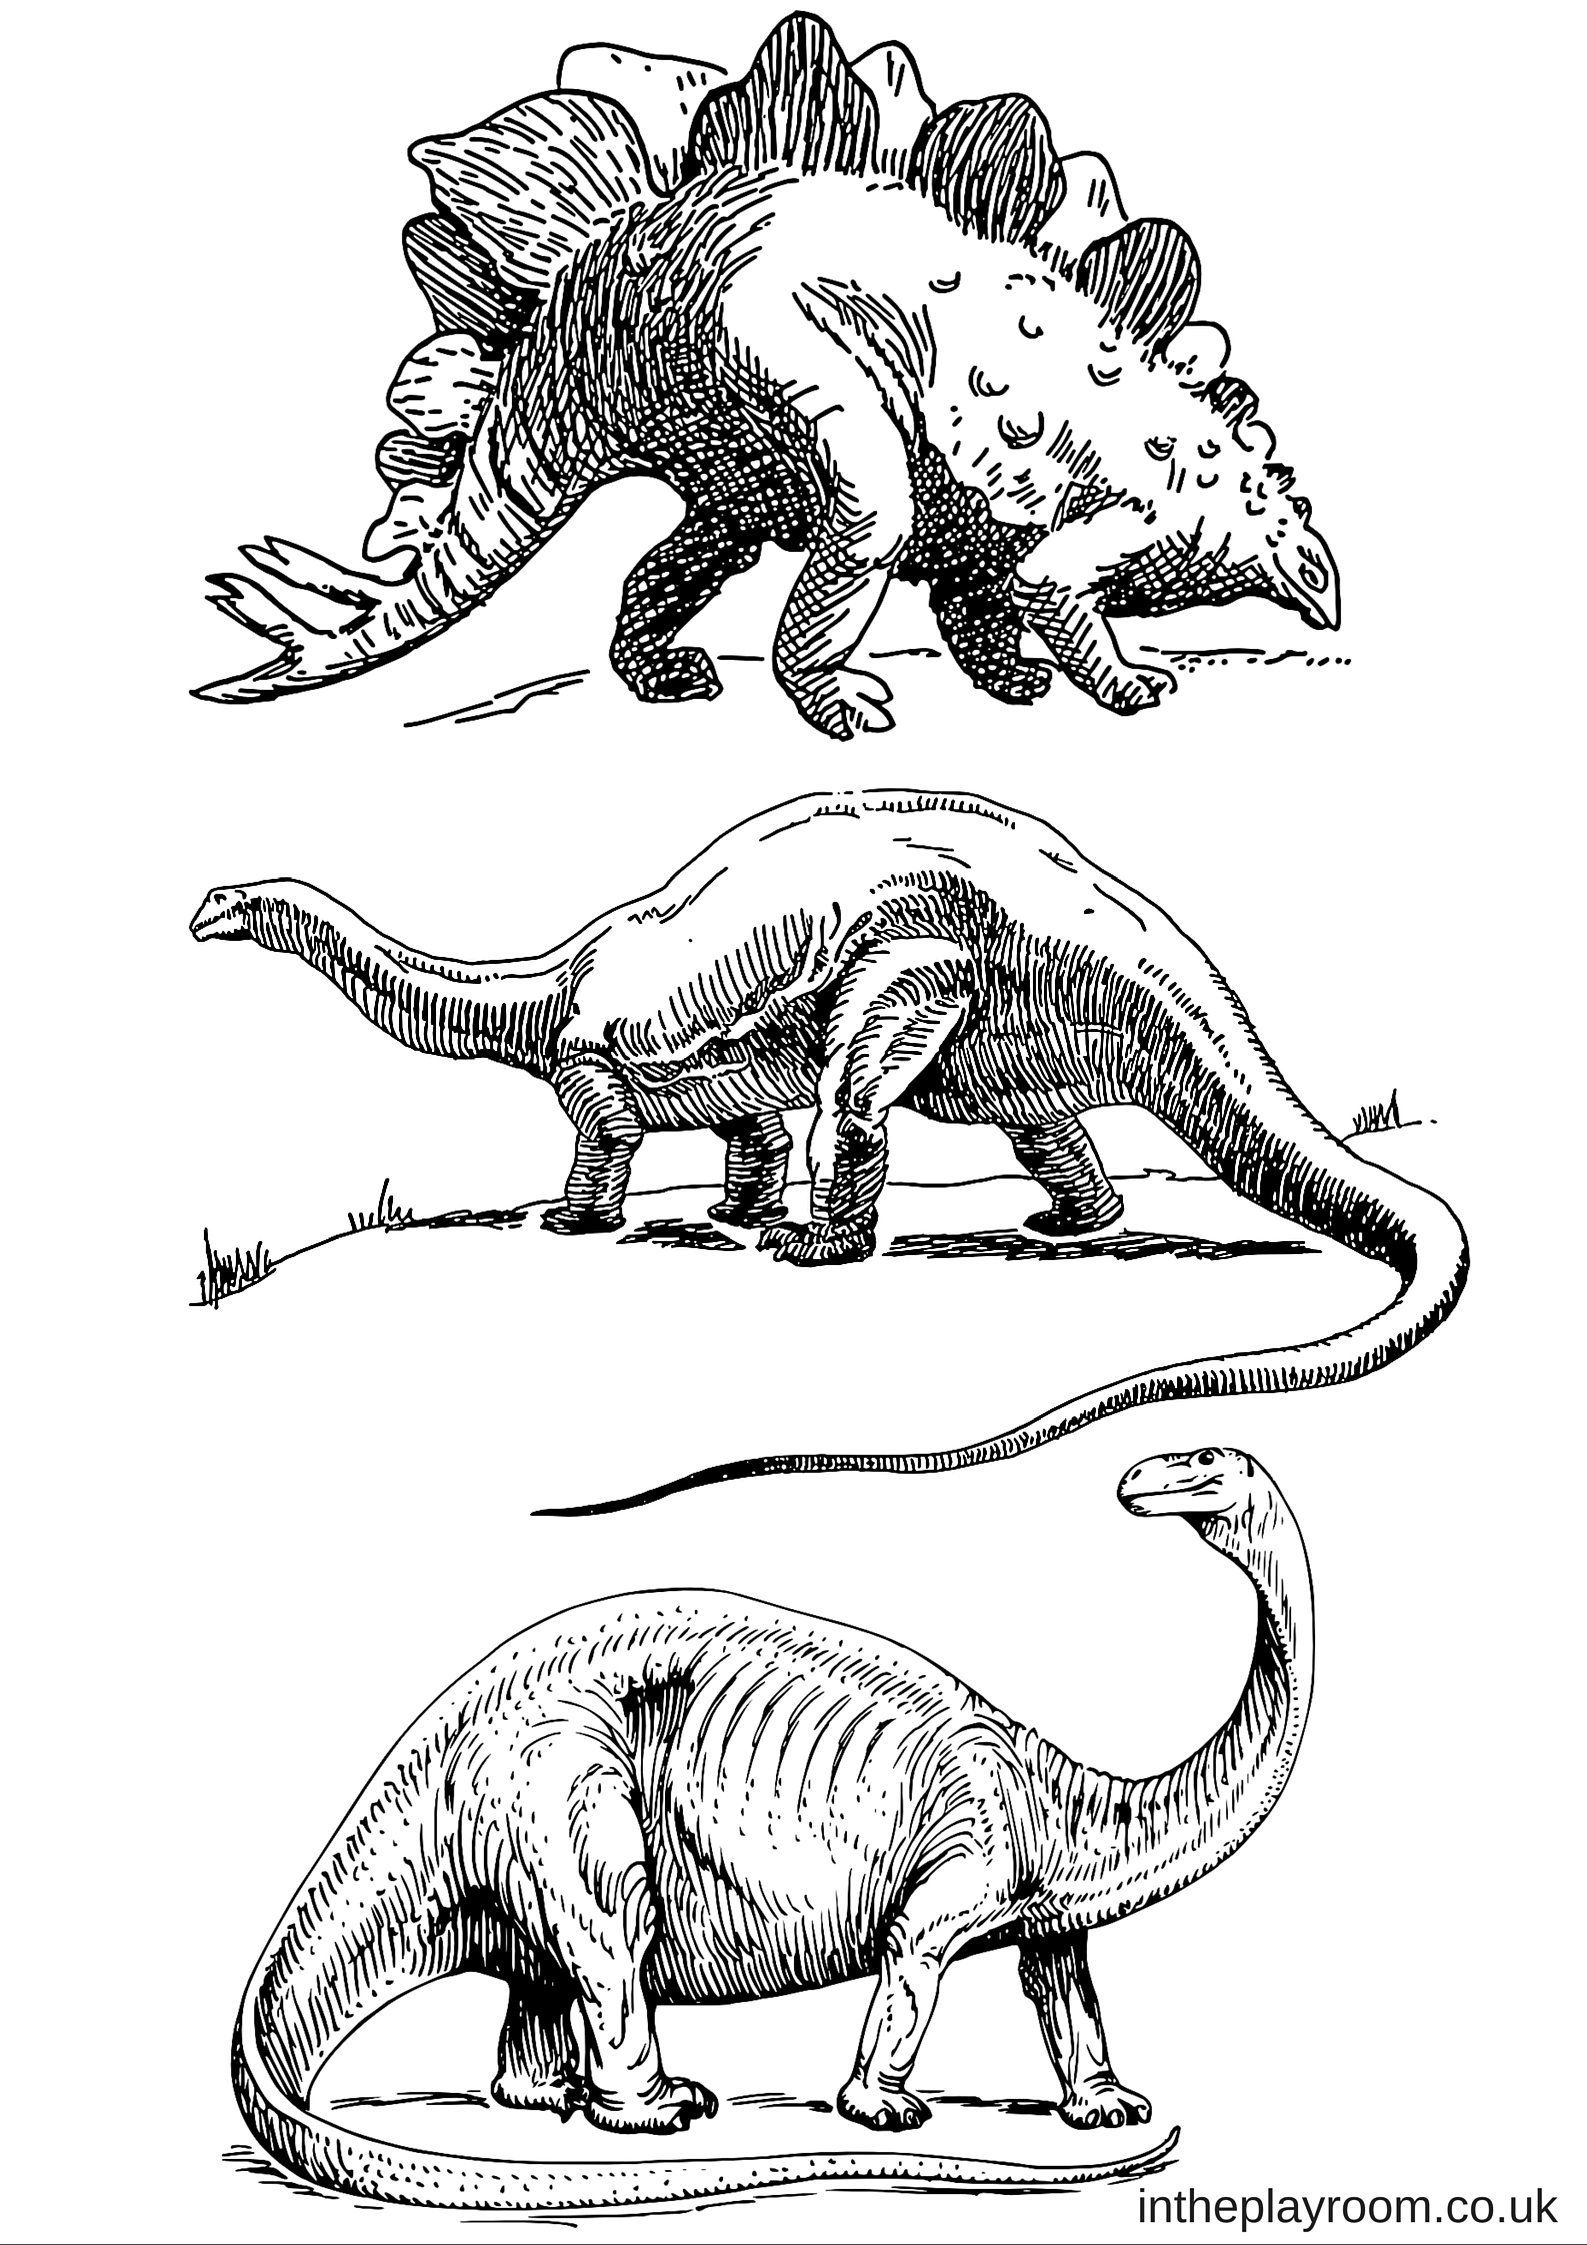 Dinosaur Colouring Pages Dinosaur coloring pages